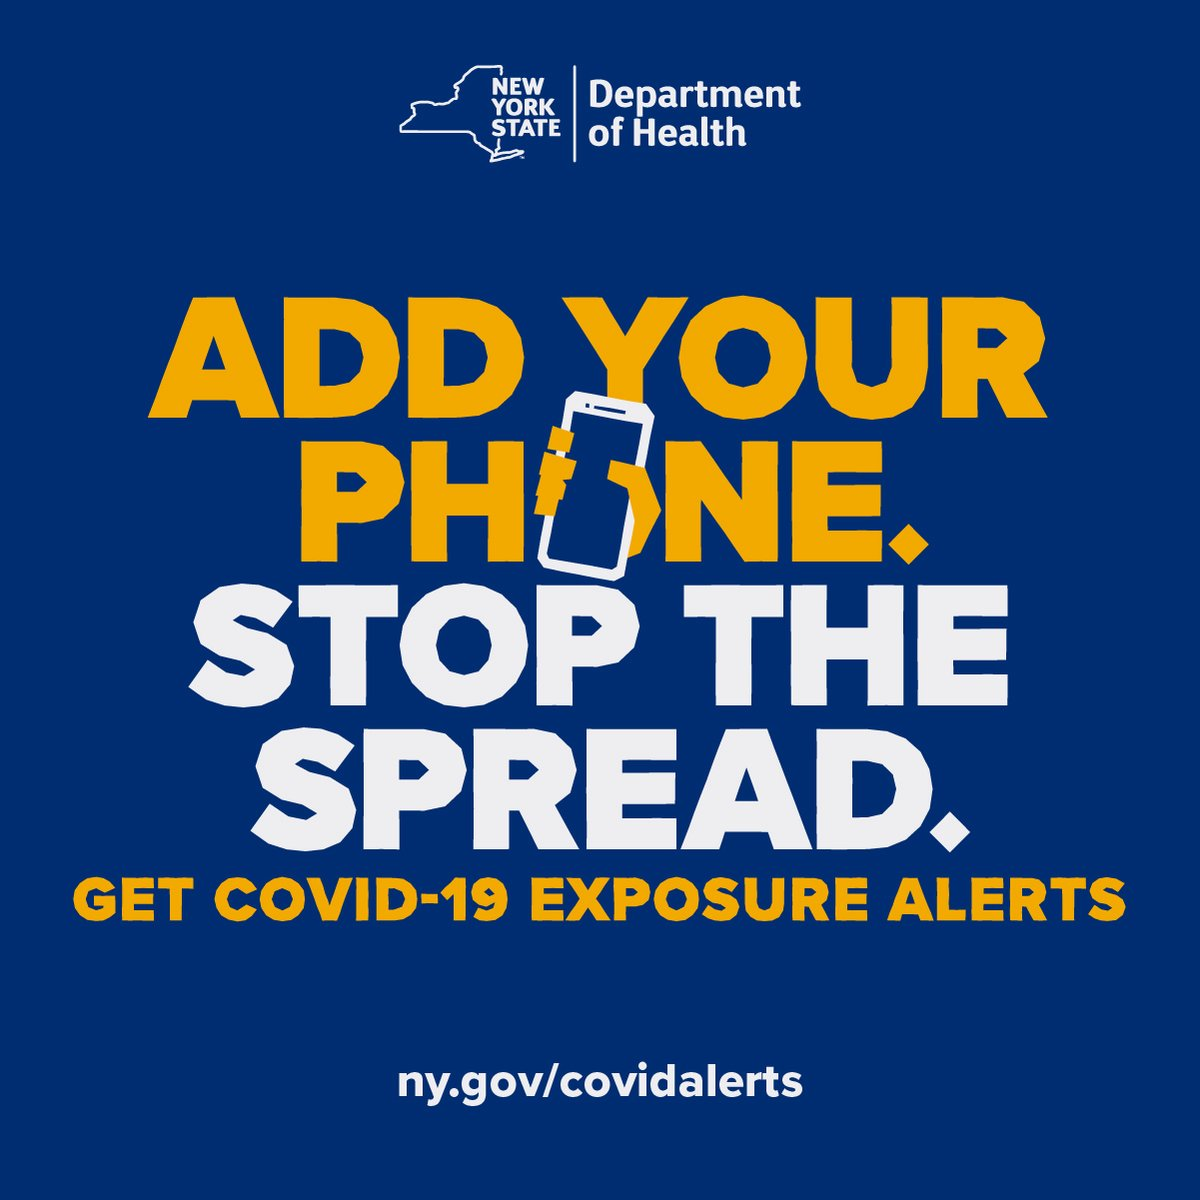 The holidays are here & we recommend downloading the COVID ALERT app which will tell you if you've been near someone who tests positive. Get alerts for your state here: . Help protect your community while maintaining your privacy. #addyourphone #IAVA